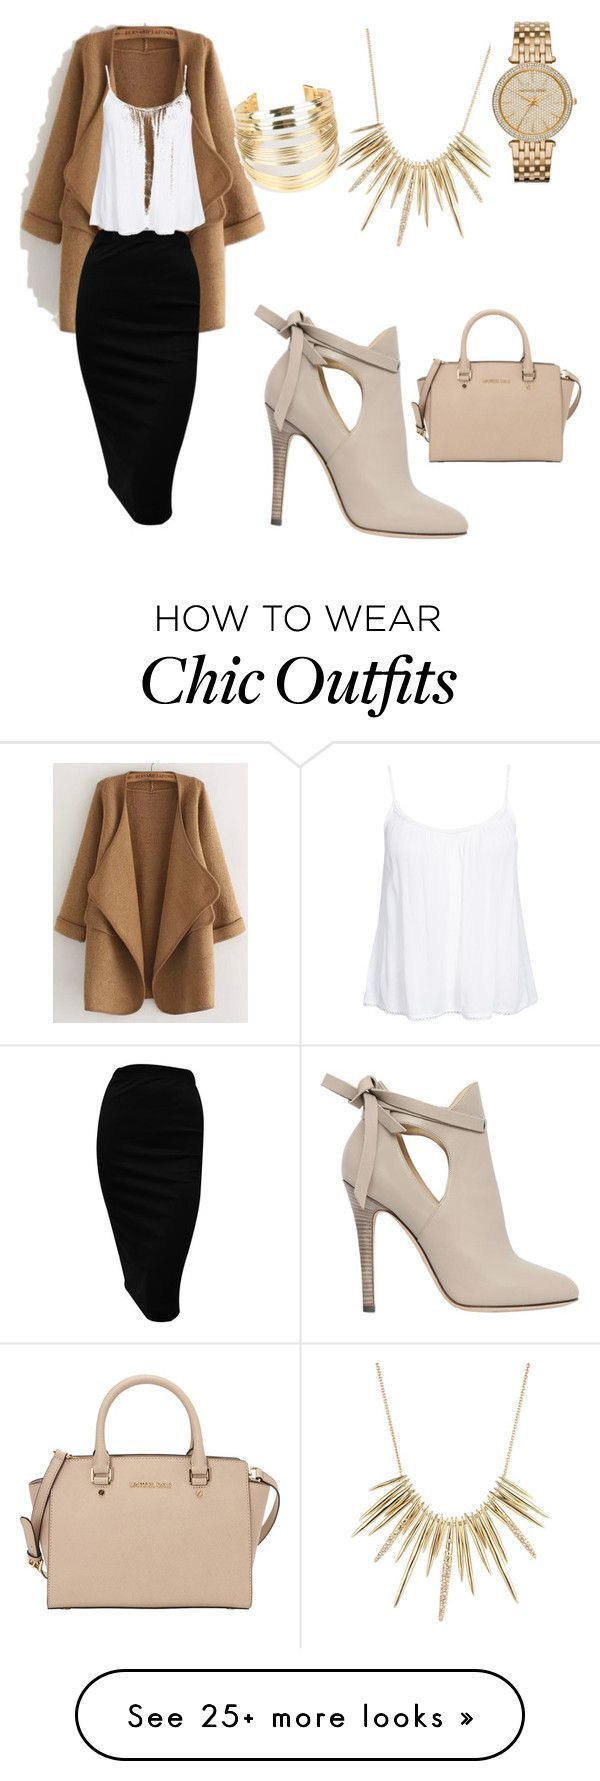 Chic and Comfortable by jleonard0730 on Polyvore featuring WithChic, Jimmy Choo, New Look, Alexis Bittar and MICHAEL Michael Kors